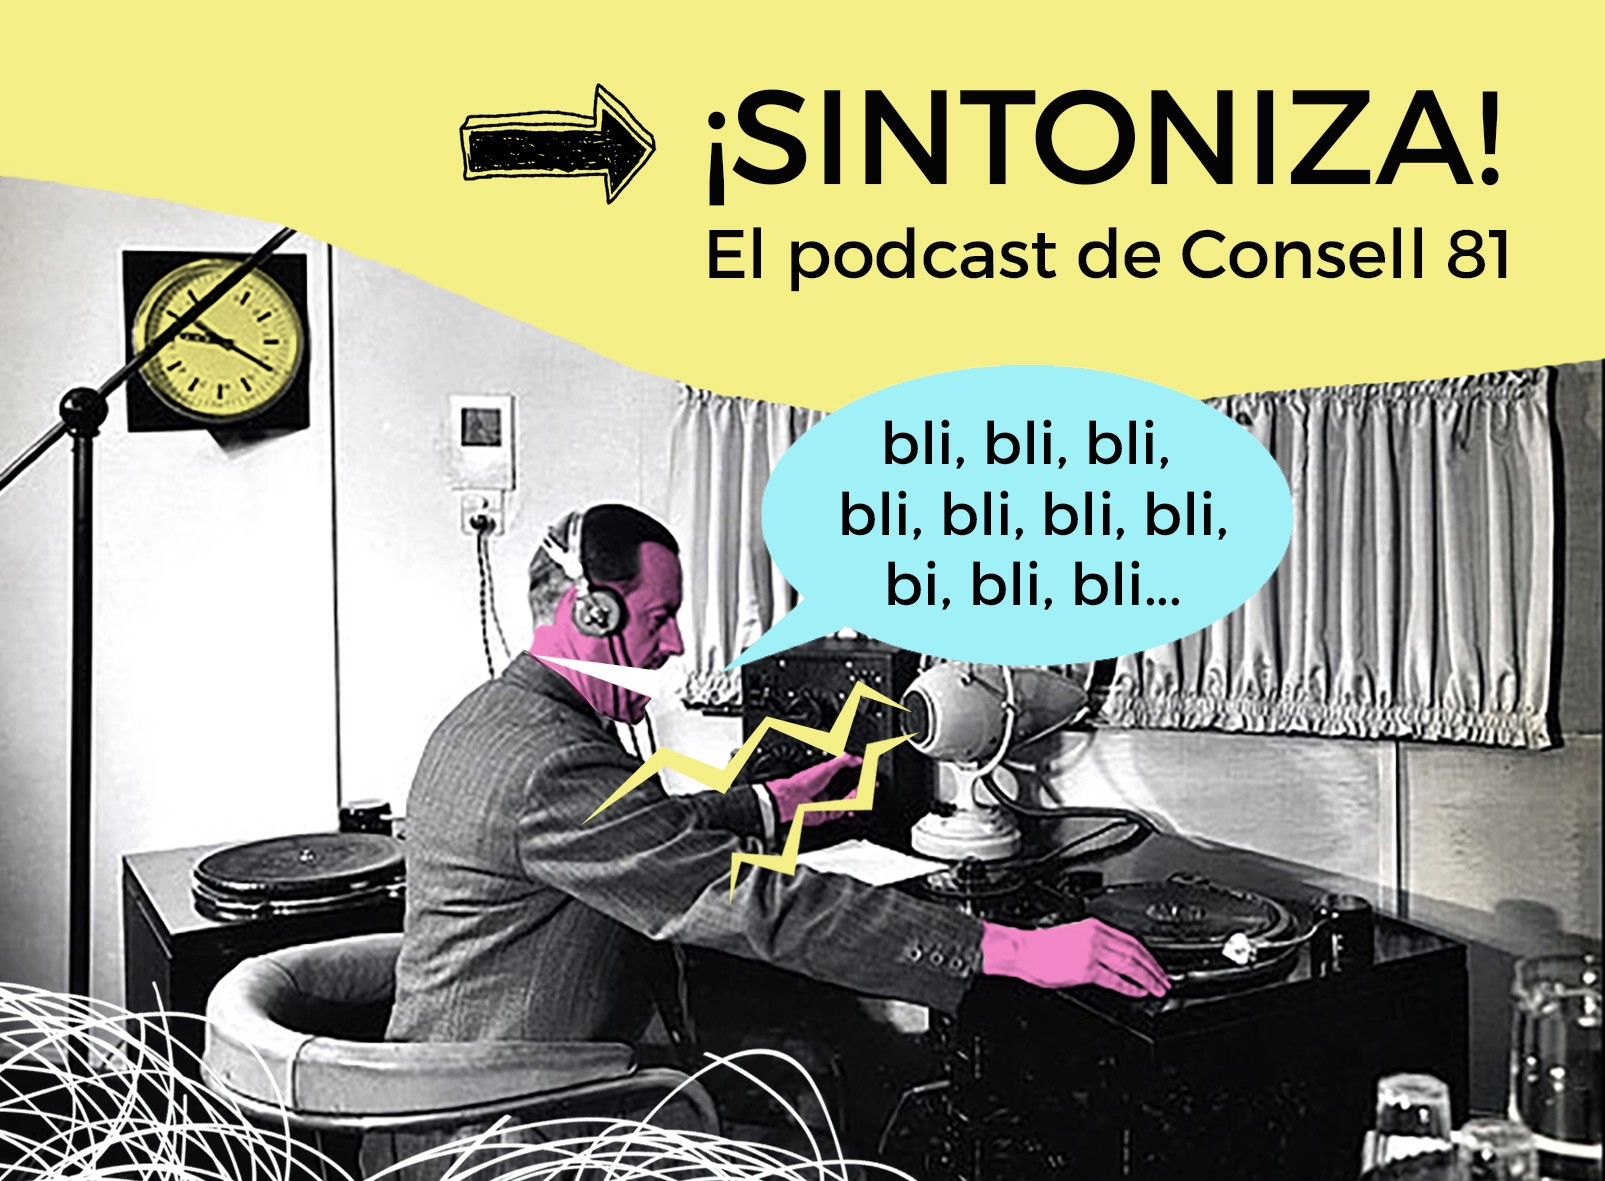 podcast de consell 81